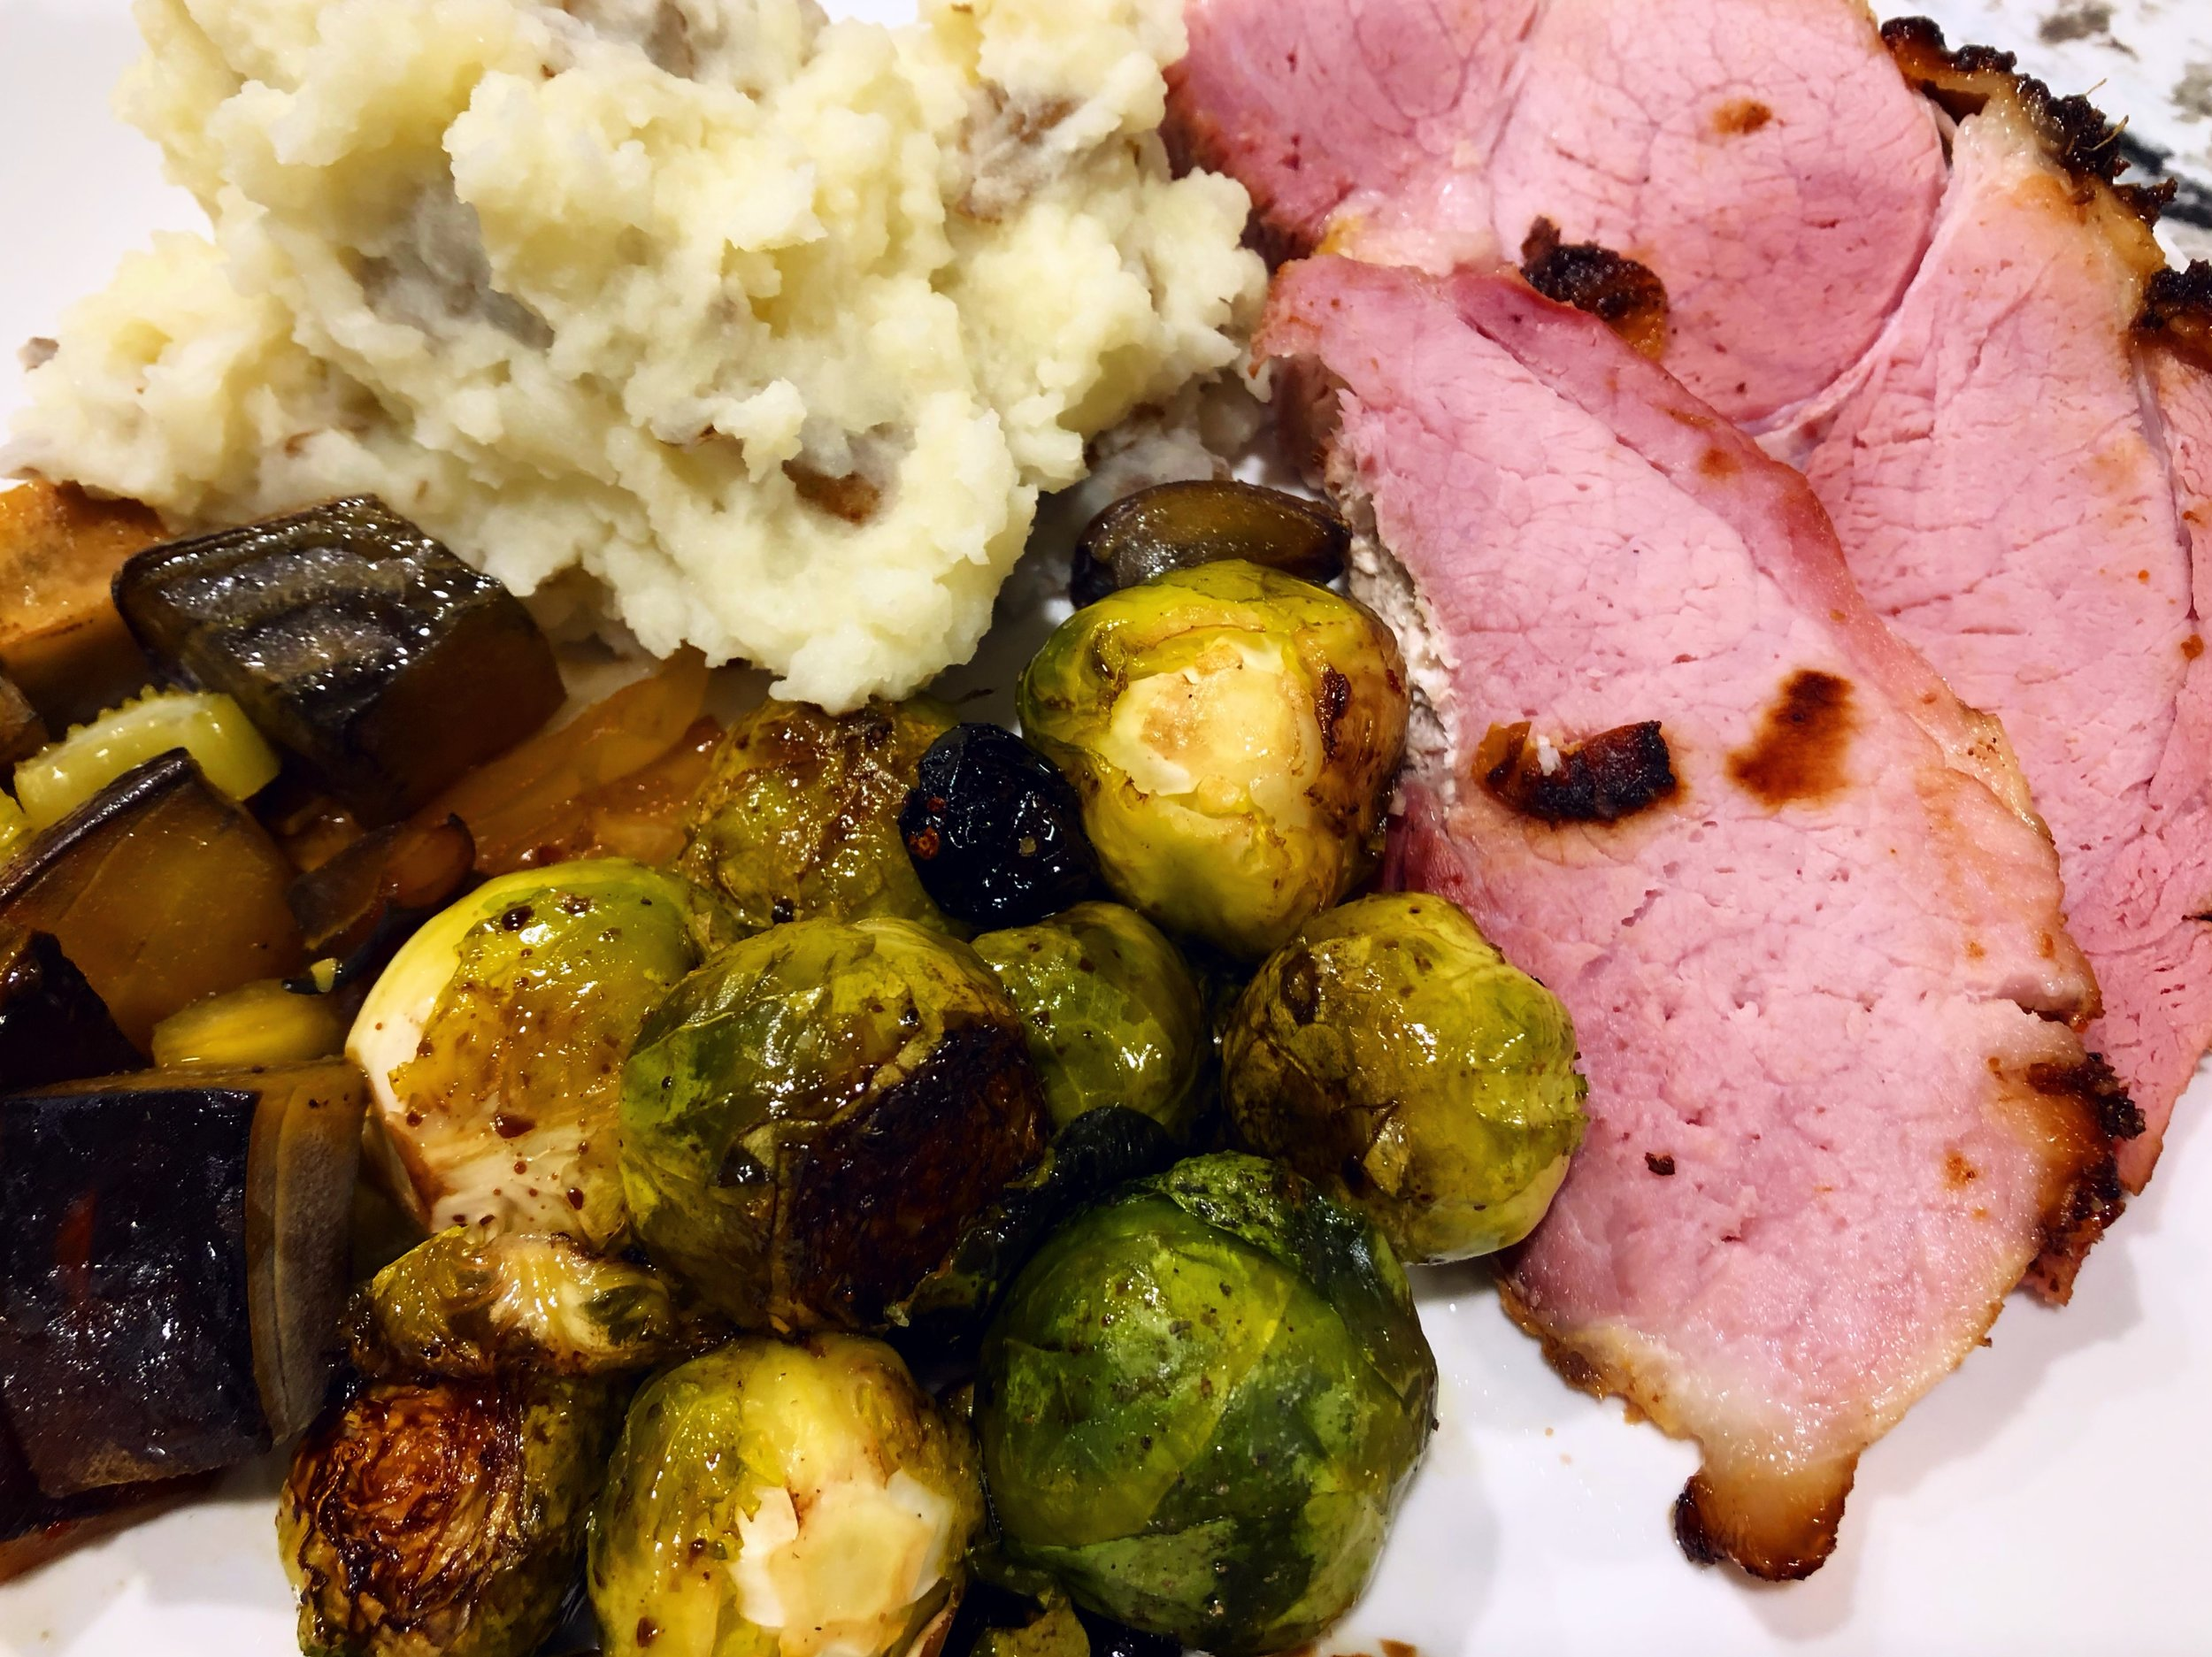 Epiphany dinner this year was ham, mashed potatoes, roasted veggies (roasted in the pan underneath the ham for maximum deliciousness), and Brussels sprouts (roasted with olive oil, balsamic vinegar, and dried cranberries).